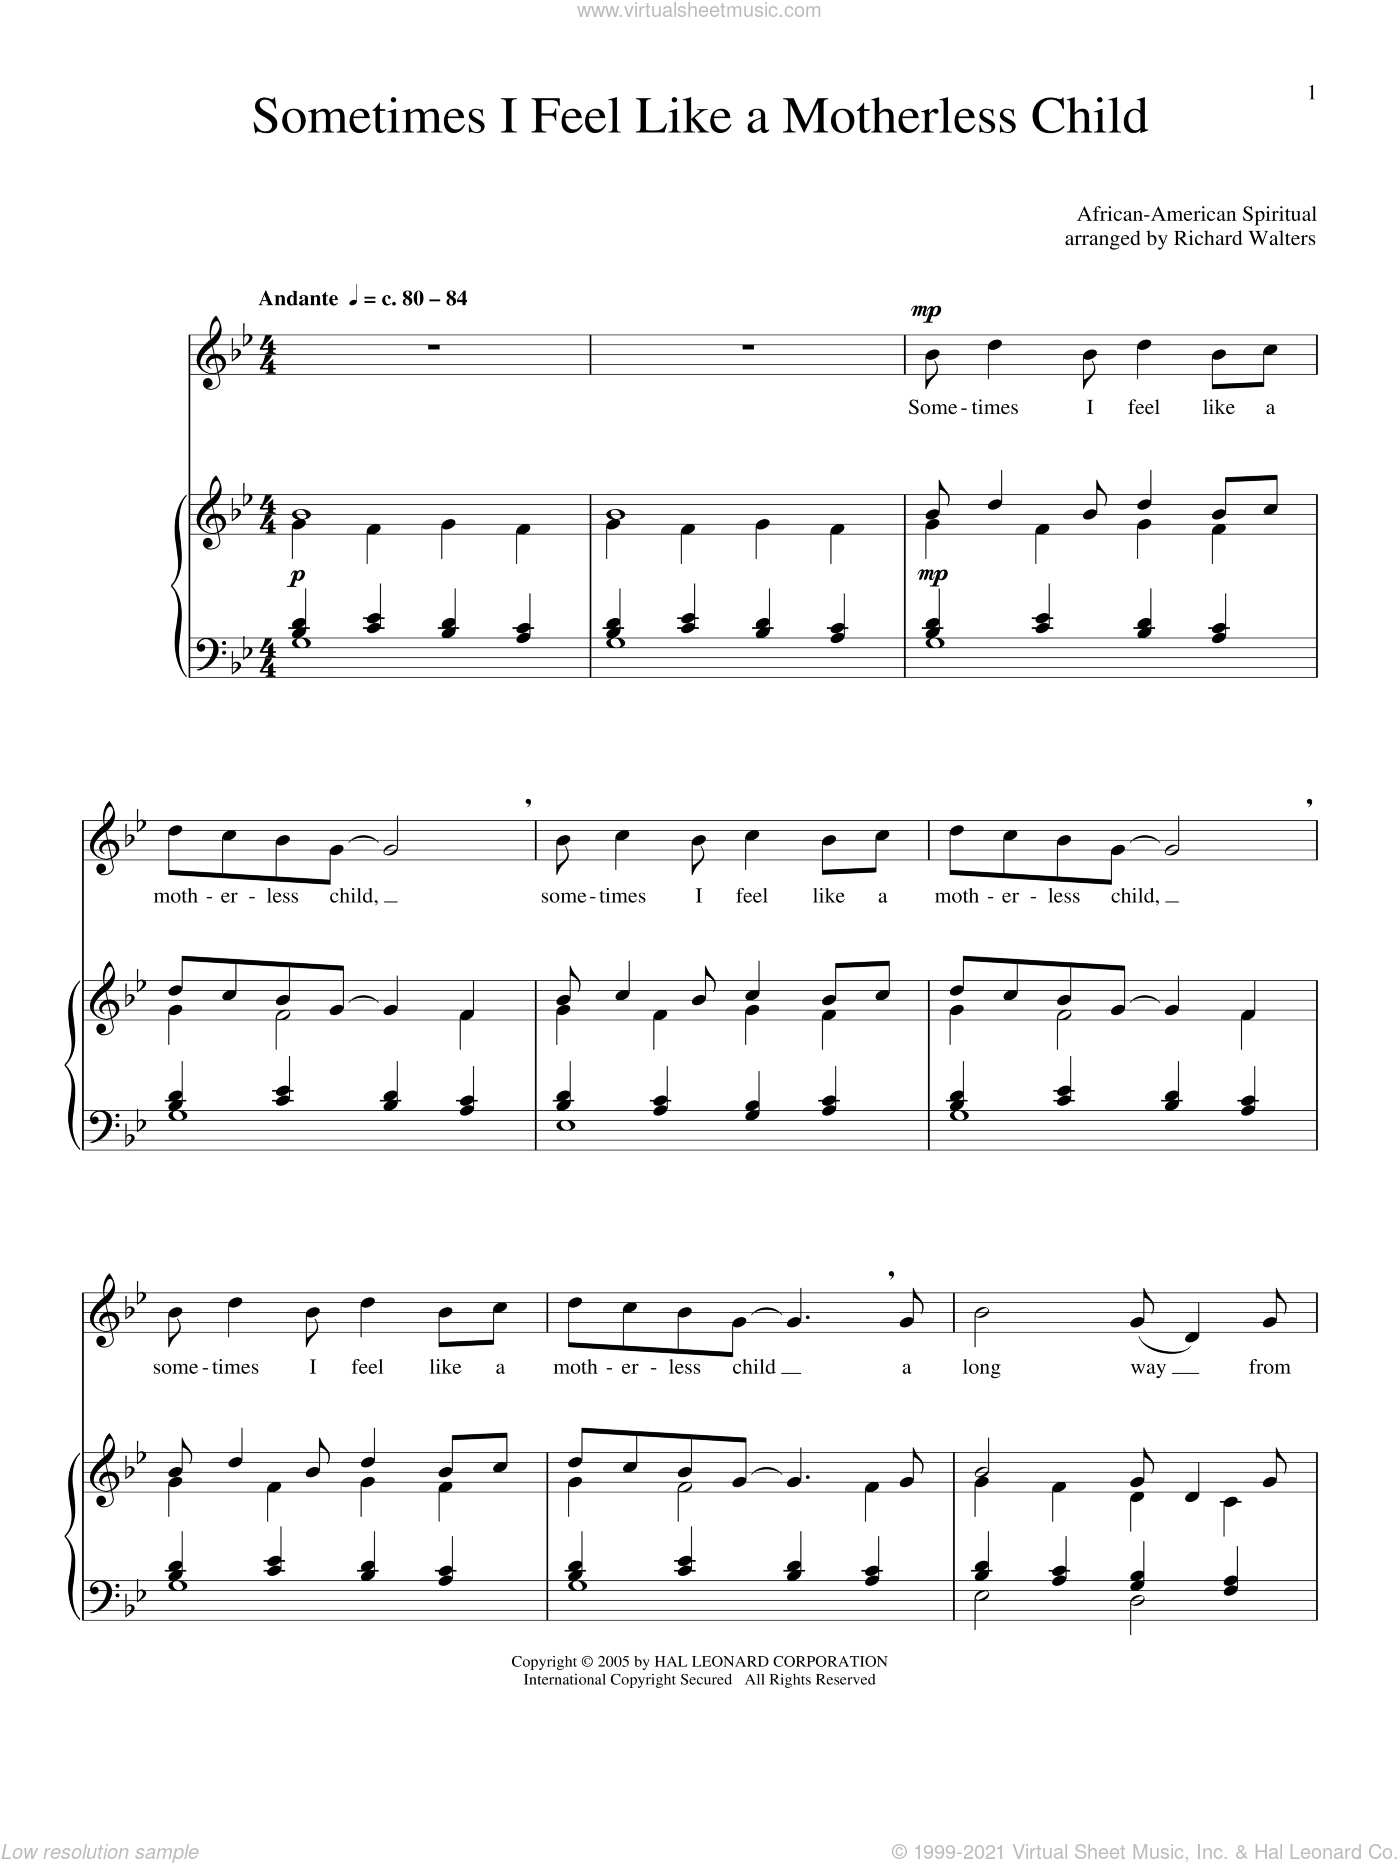 Sometimes I Feel Like A Motherless Child sheet music for voice and piano